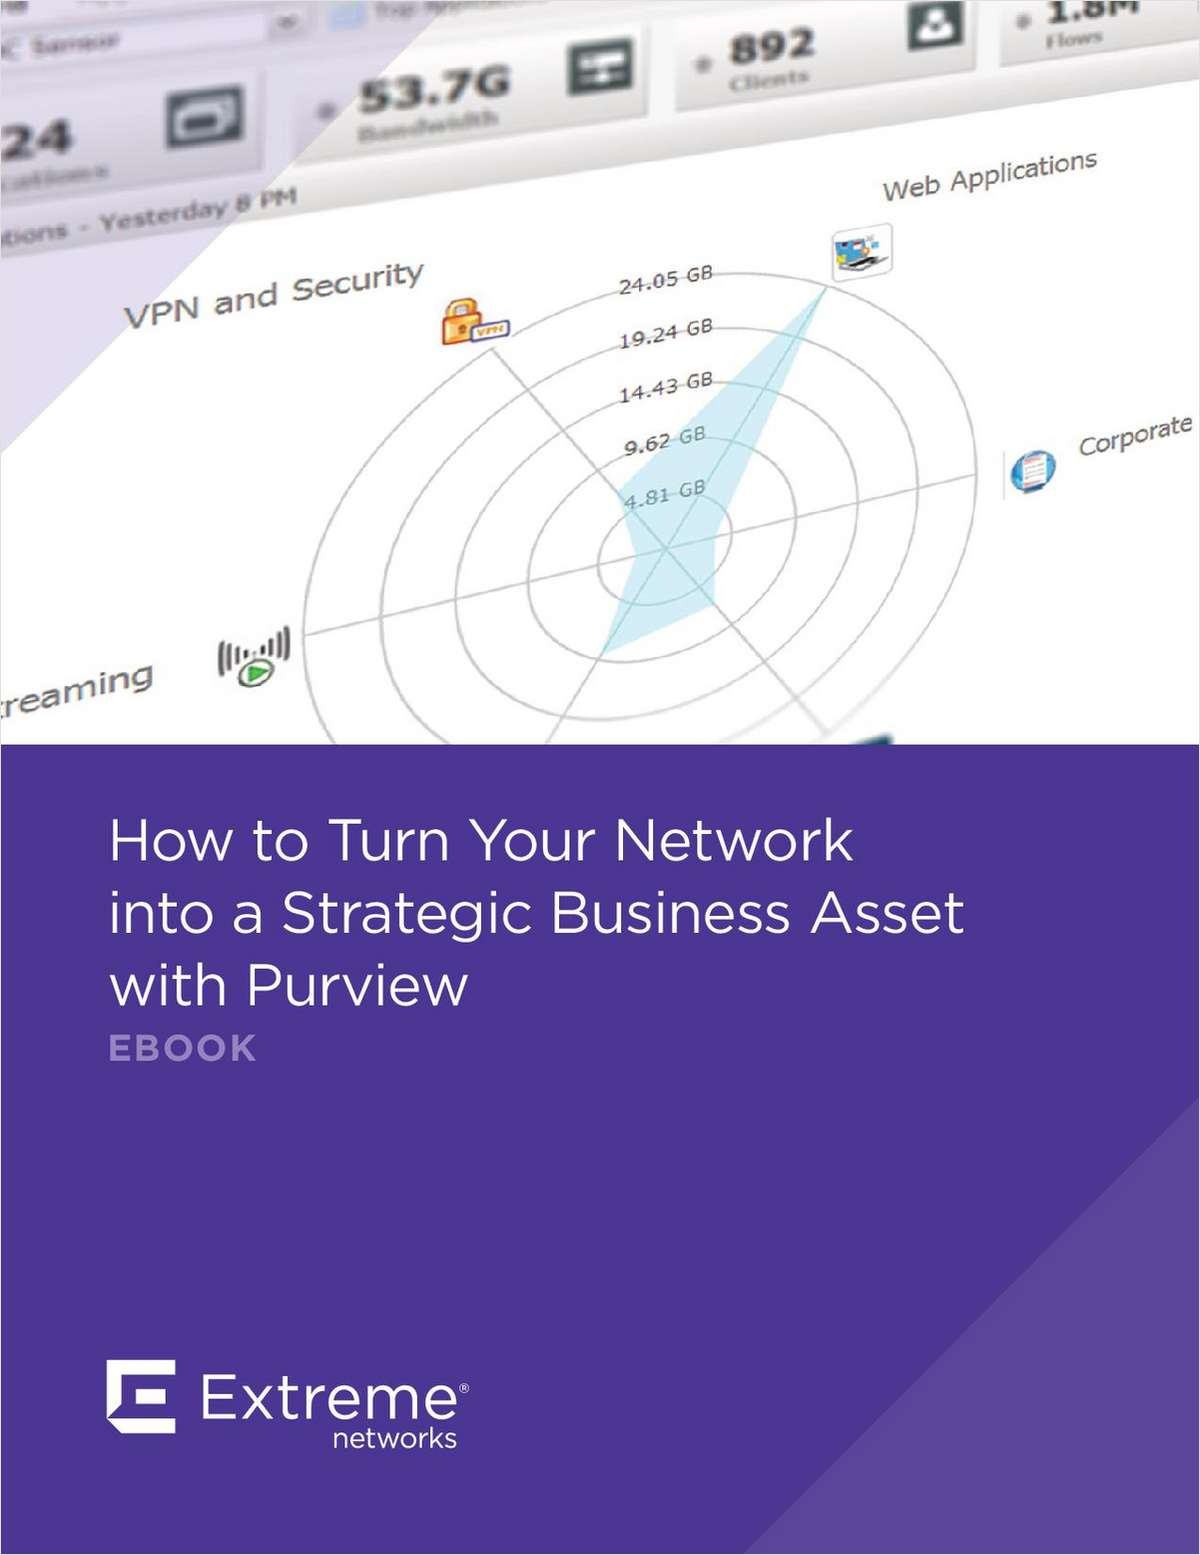 How to Turn Your Network into a Strategic Business Asset with Purview